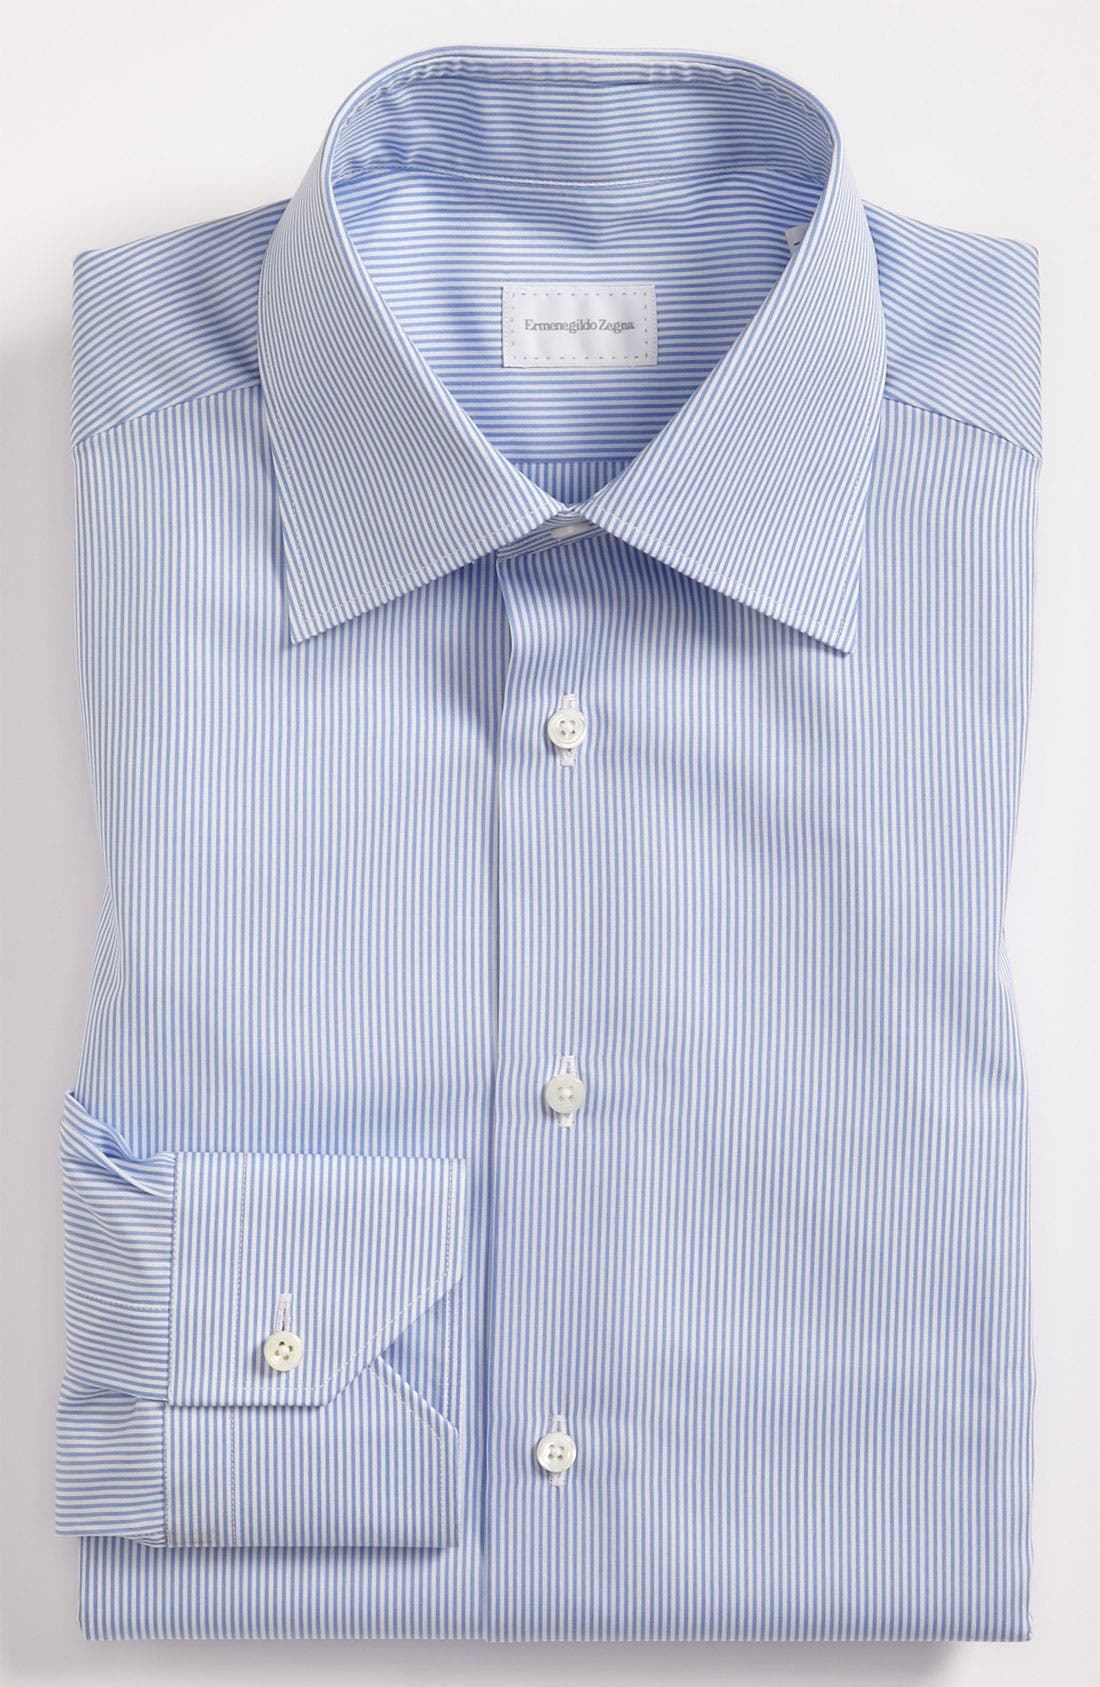 Main Image - Ermenegildo Zegna Tailored Fit Dress Shirt